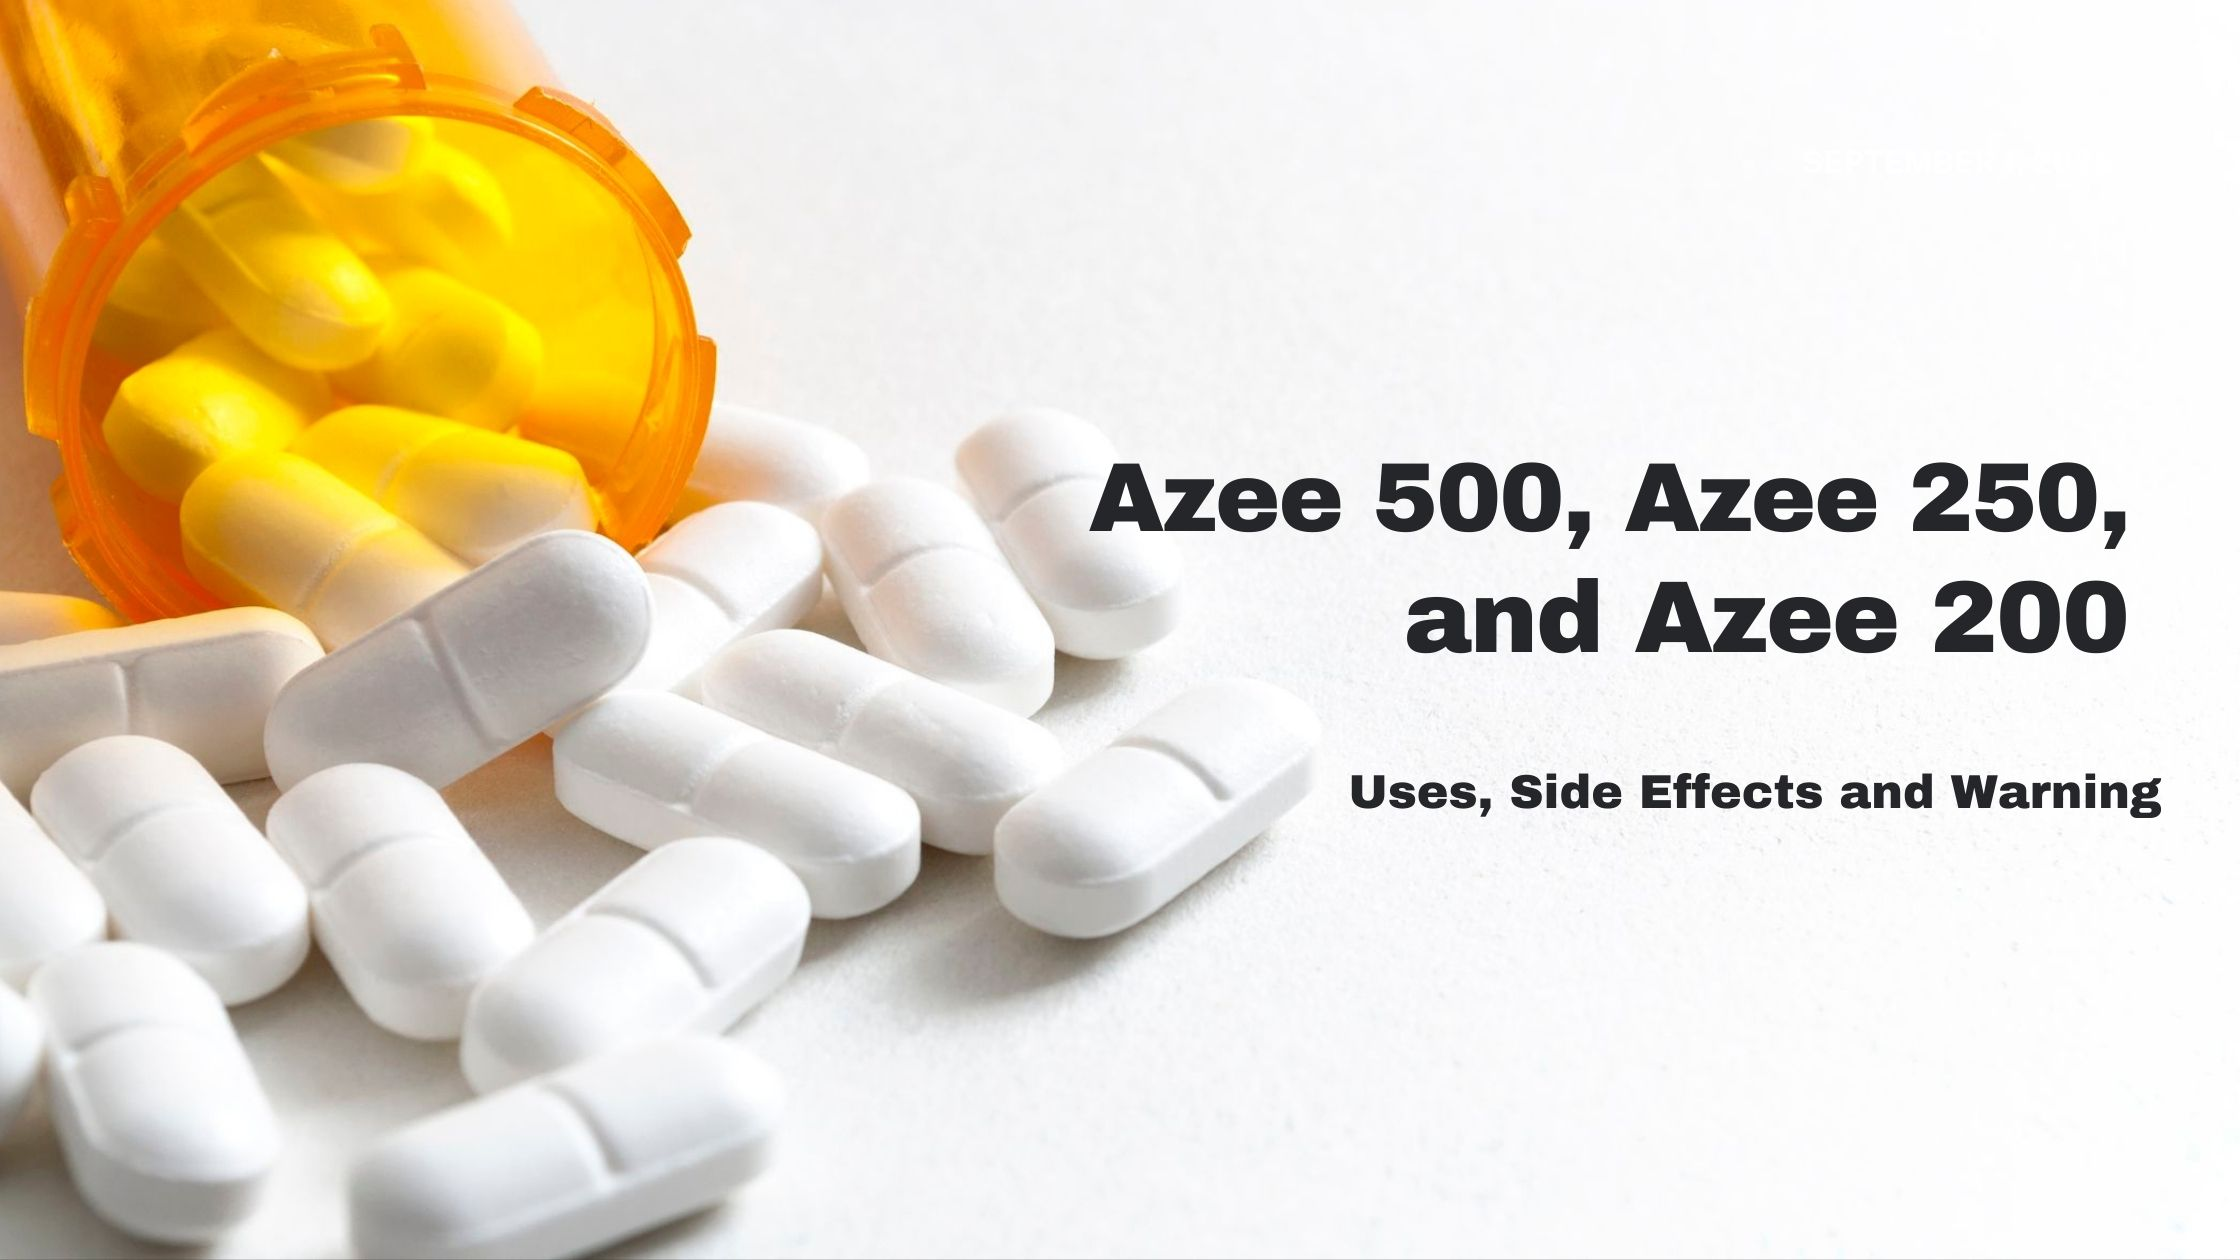 Azee 500, Azee 250 and Azee 200: Uses, Side Effects and Warning